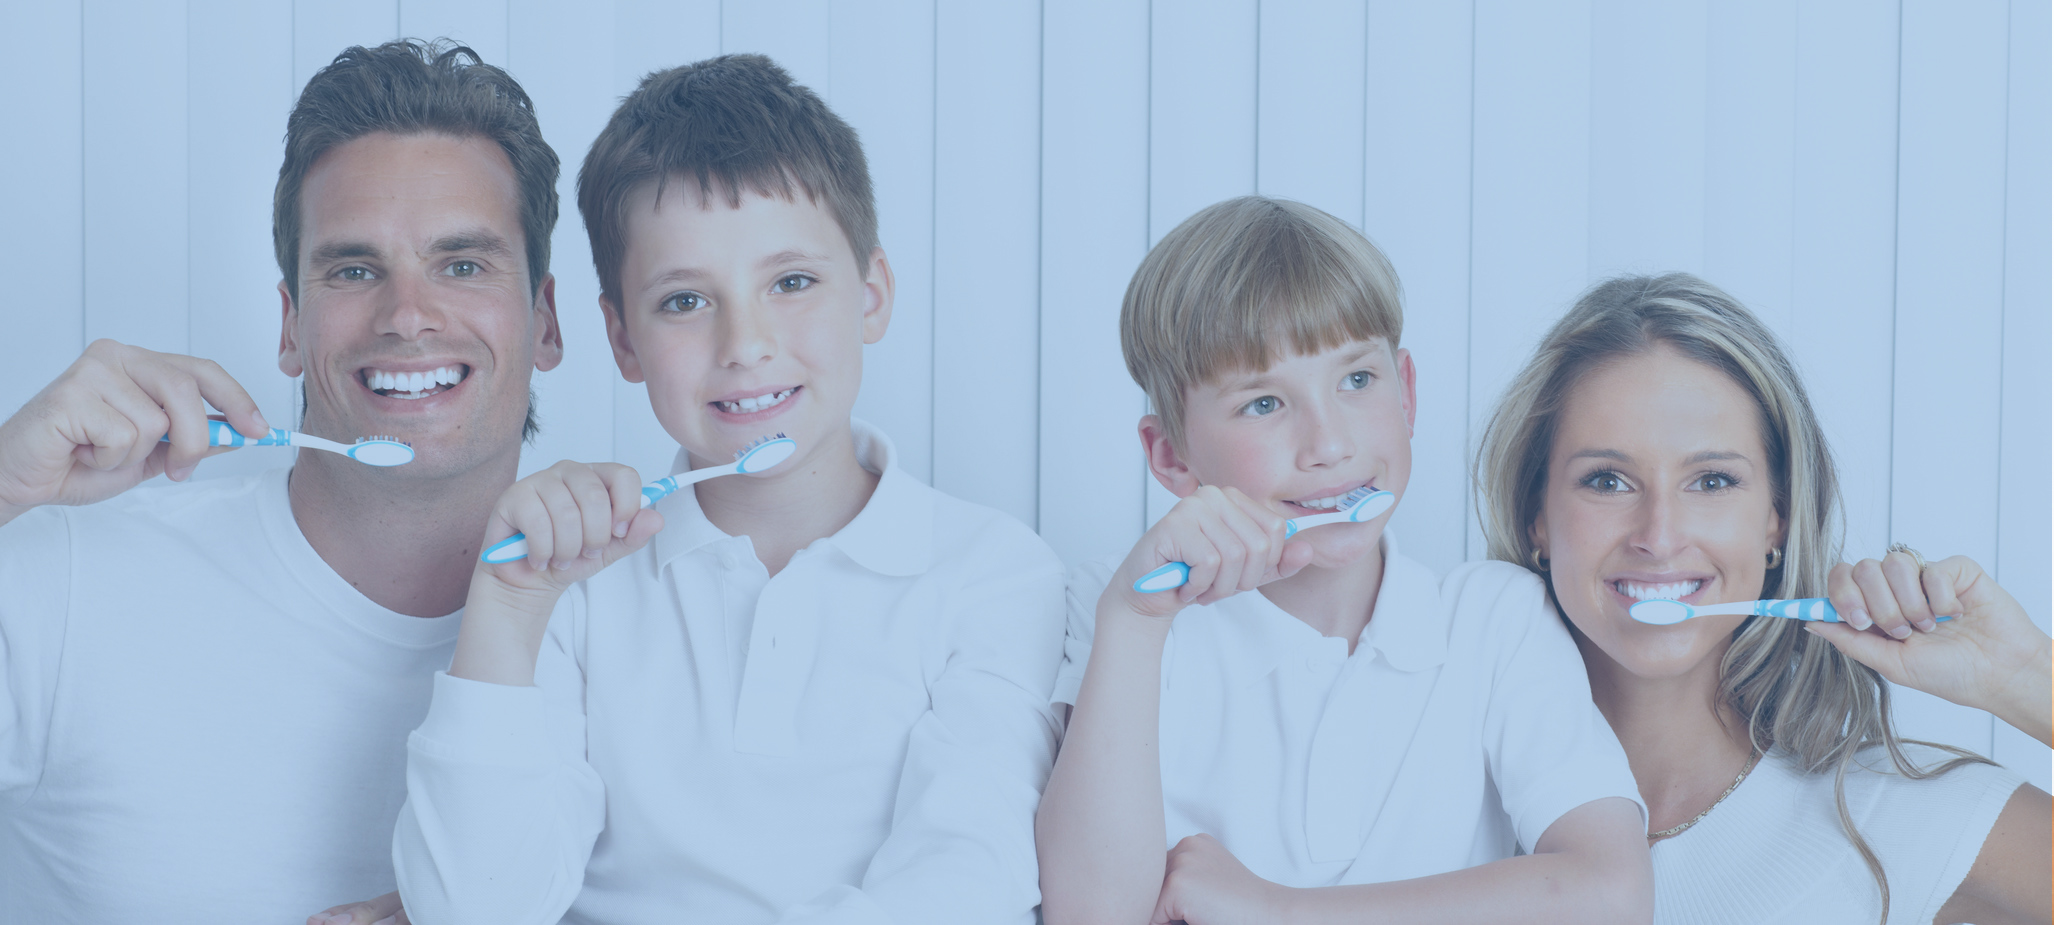 Happy family. Father, mother and children with toothbrushes.